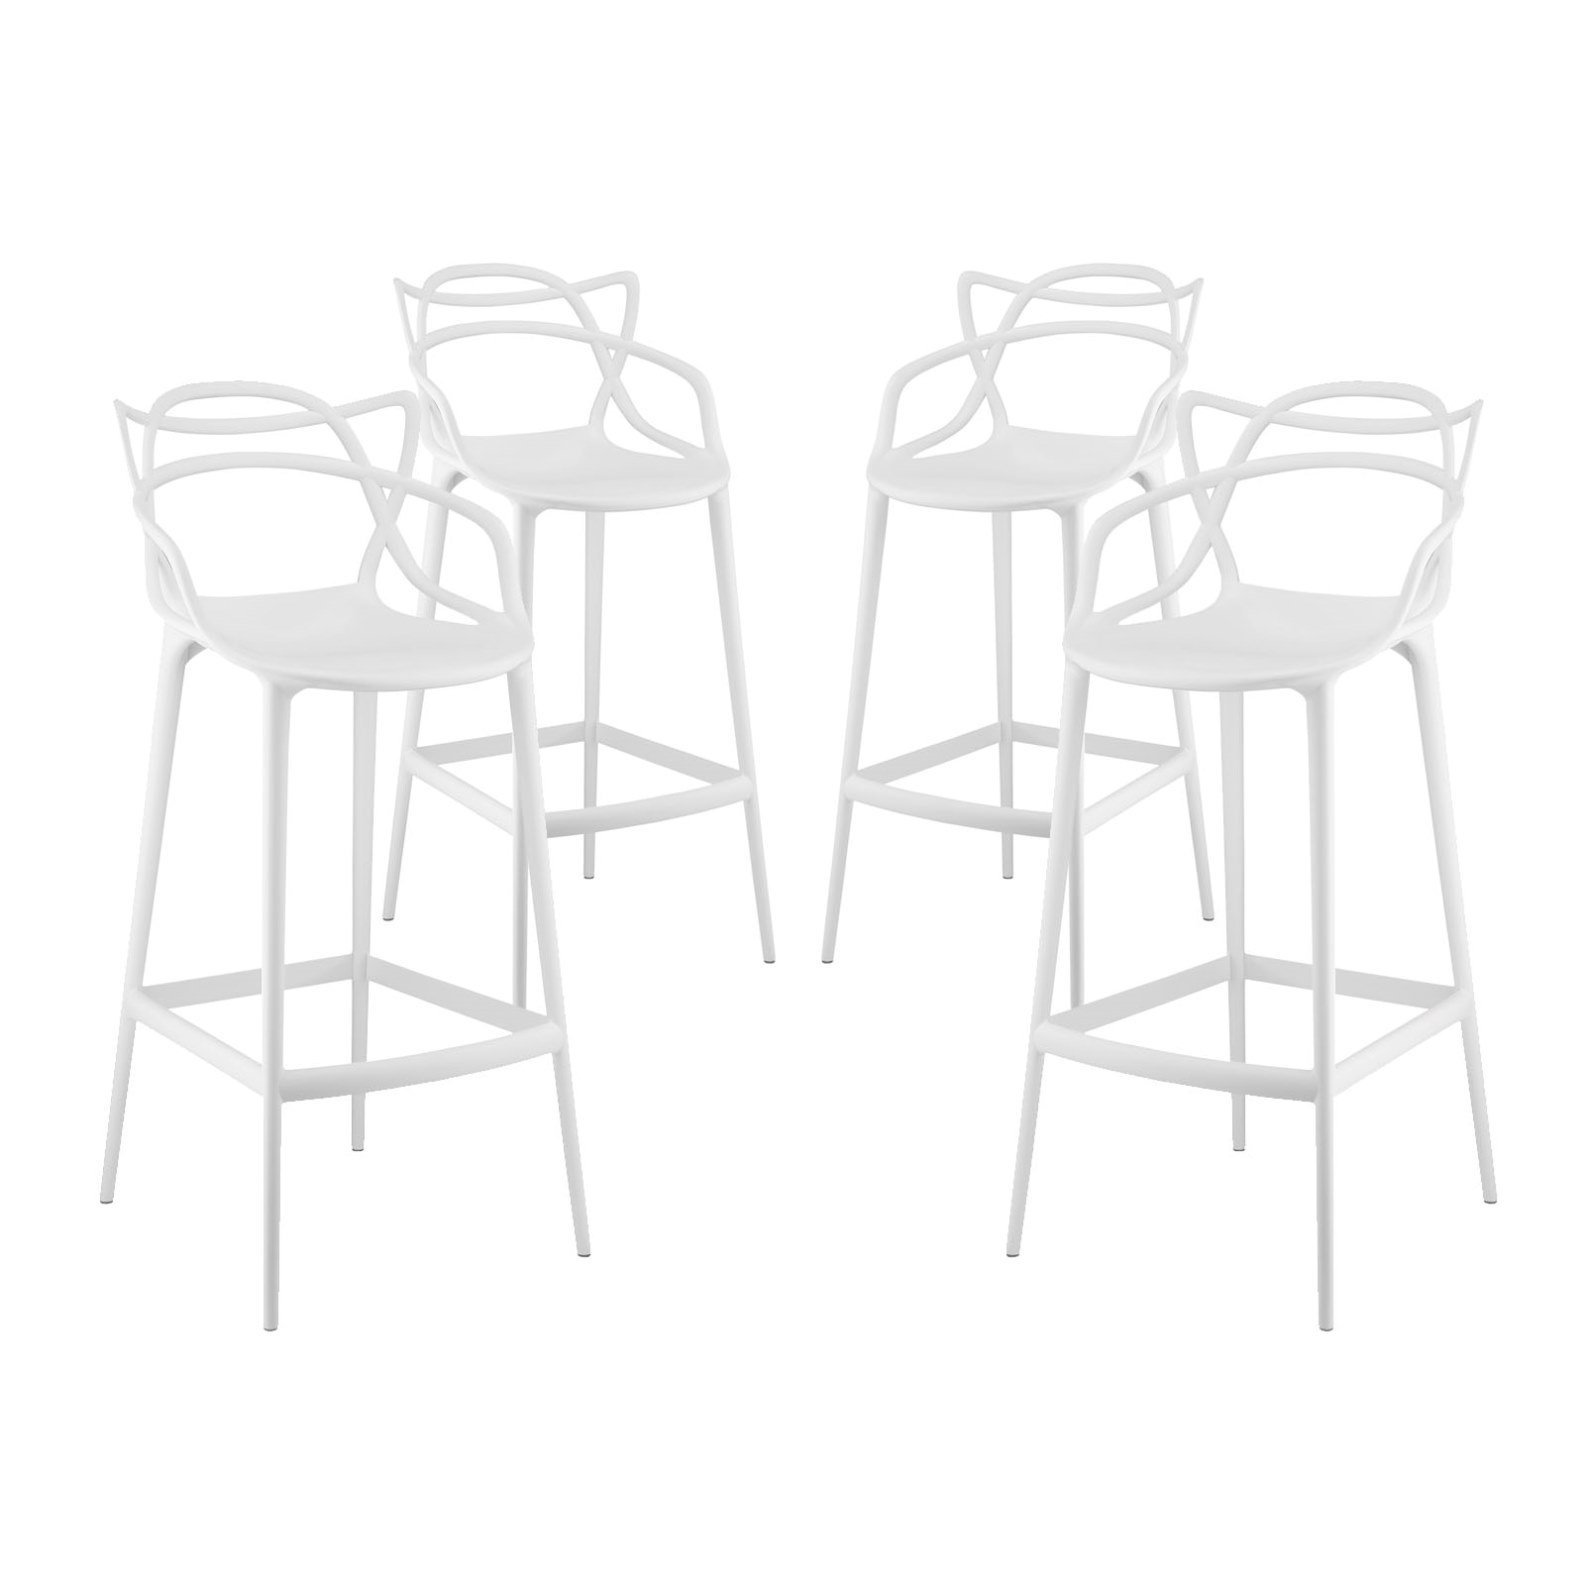 Modern Contemporary Urban Design Outdoor Kitchen Room Bar Stool Chair ( Set of Four), White, Plastic